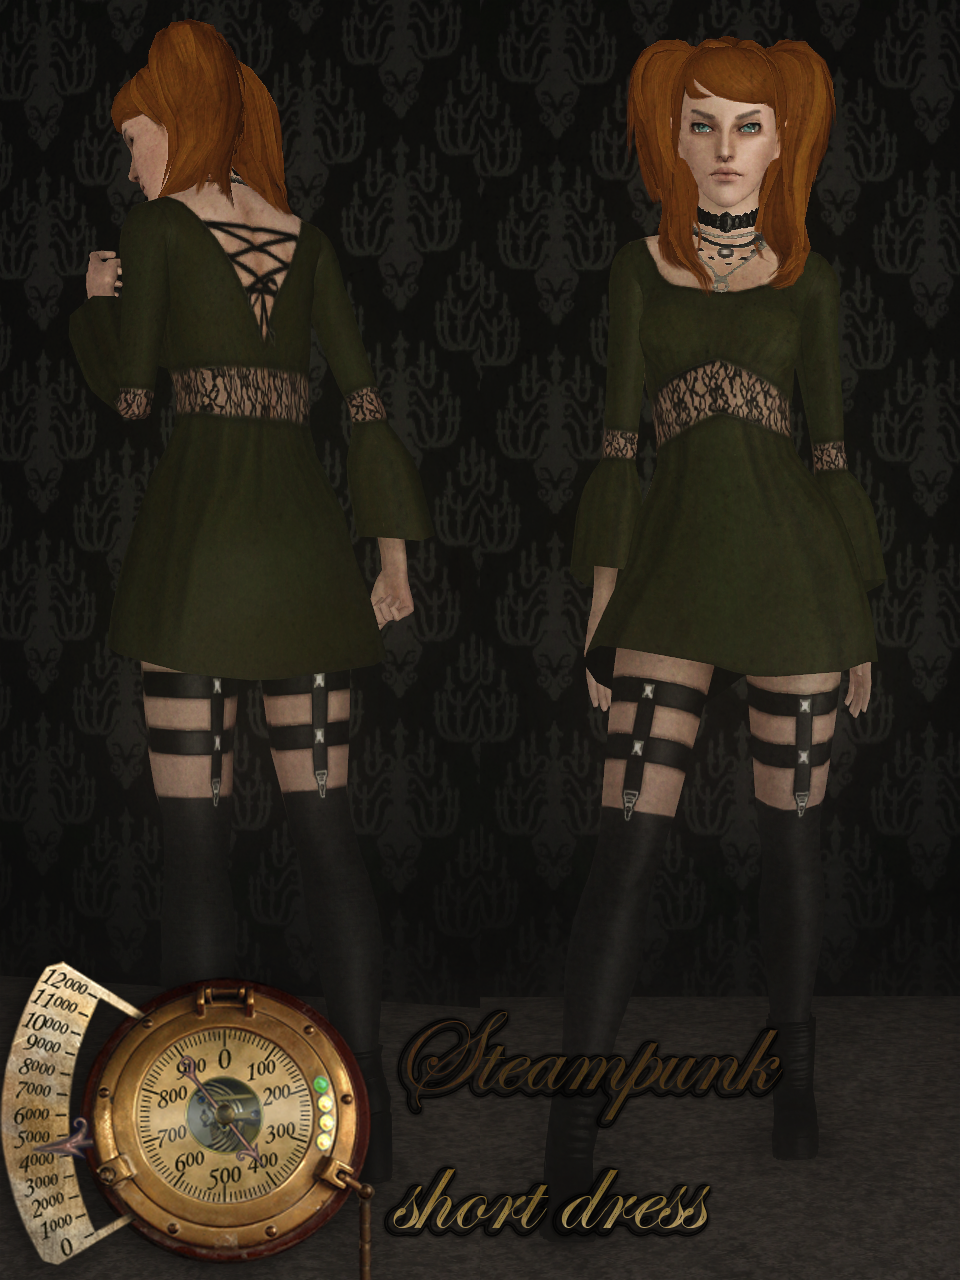 Steampunk short dress by Sunny